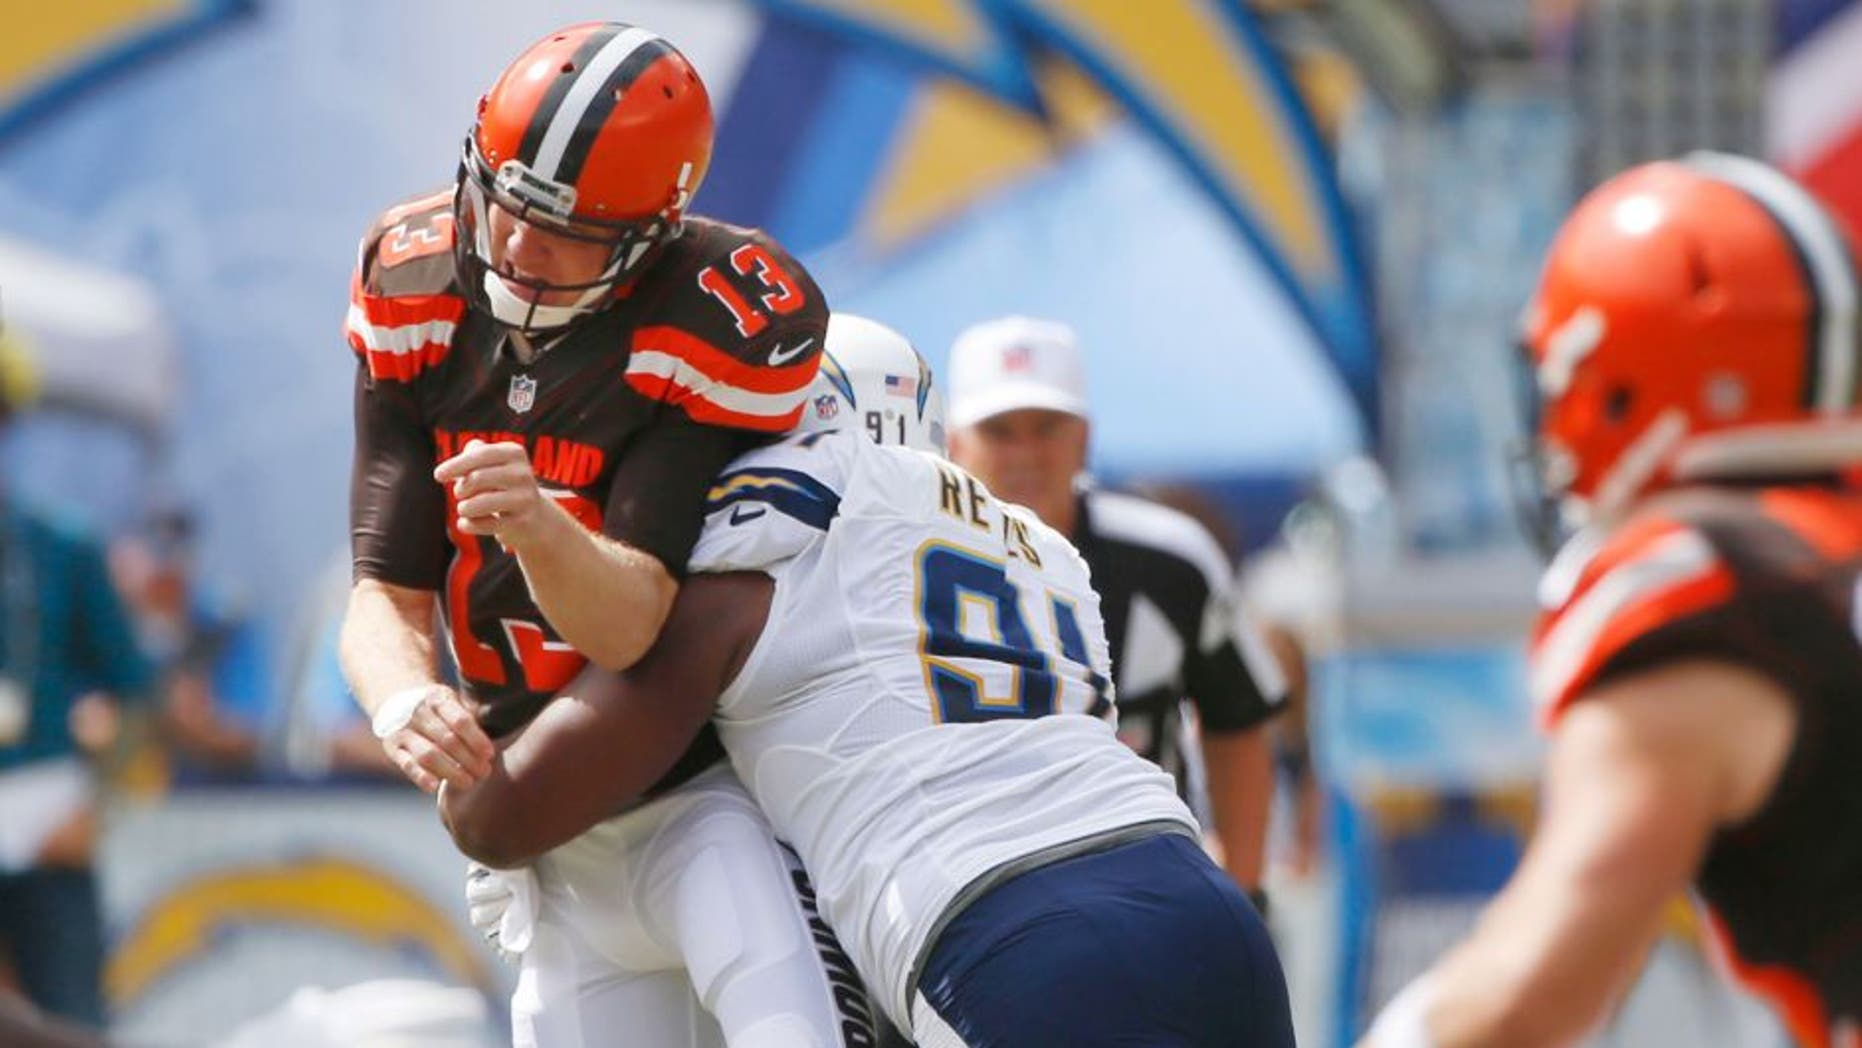 Cleveland Browns quarterback Josh McCown is hit by San Diego Chargers defensive end Kendall Reyes as he throws a pass during the first half in an NFL football game Sunday, Oct. 4, 2015, in San Diego. (AP Photo/Lenny Ignelzi)